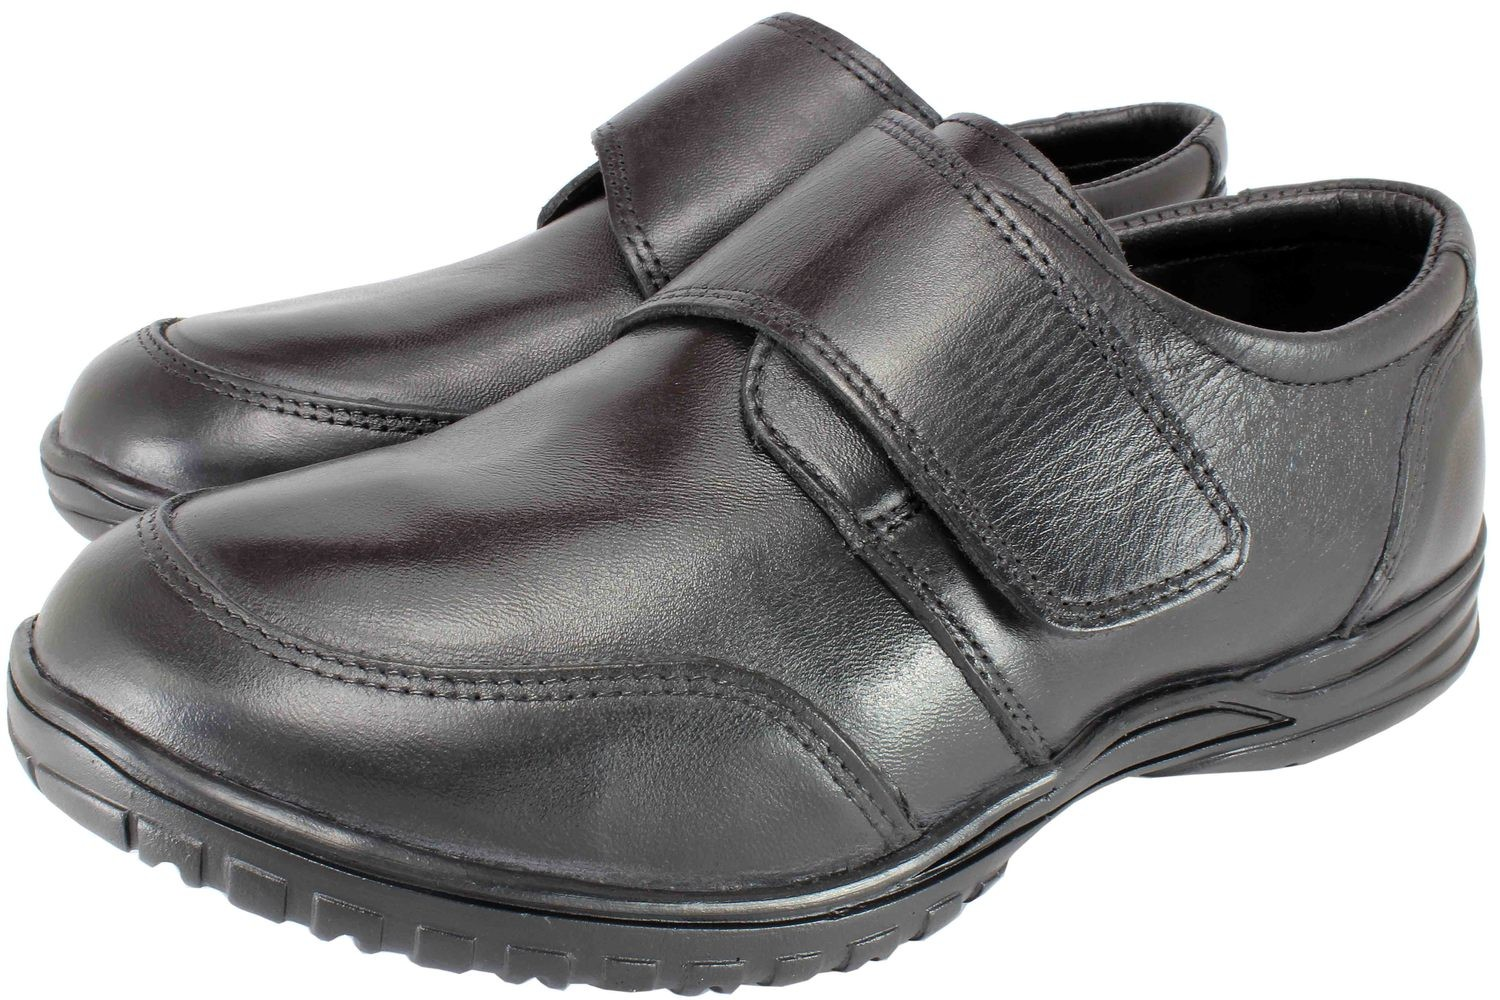 Bulk Black Shoes For Boys, Napa Soft Leather, Soft Insole, Velcro ,Rubber Sole